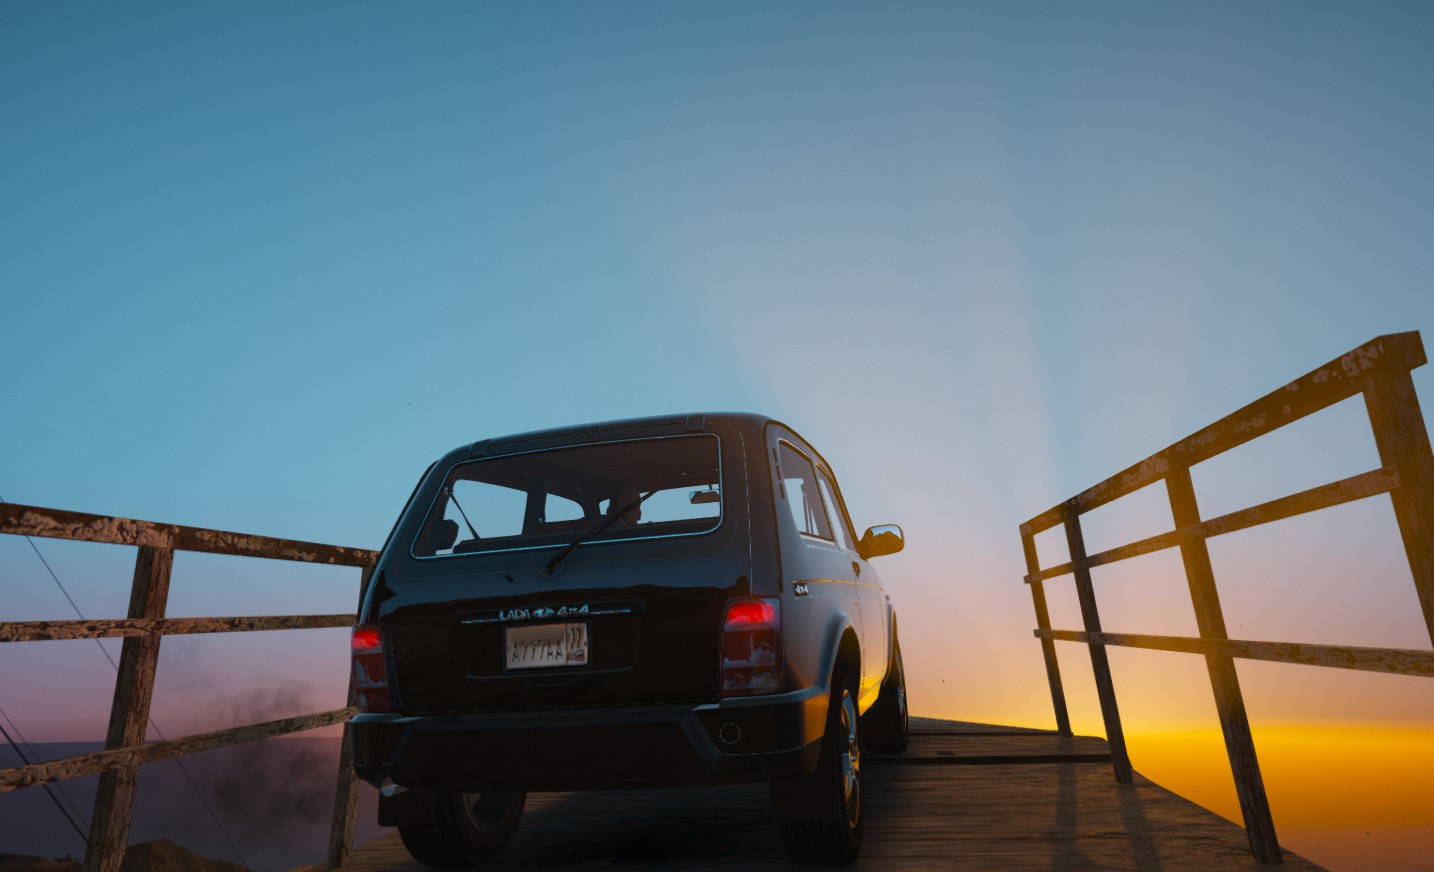 how to change license plate in gta 5 online